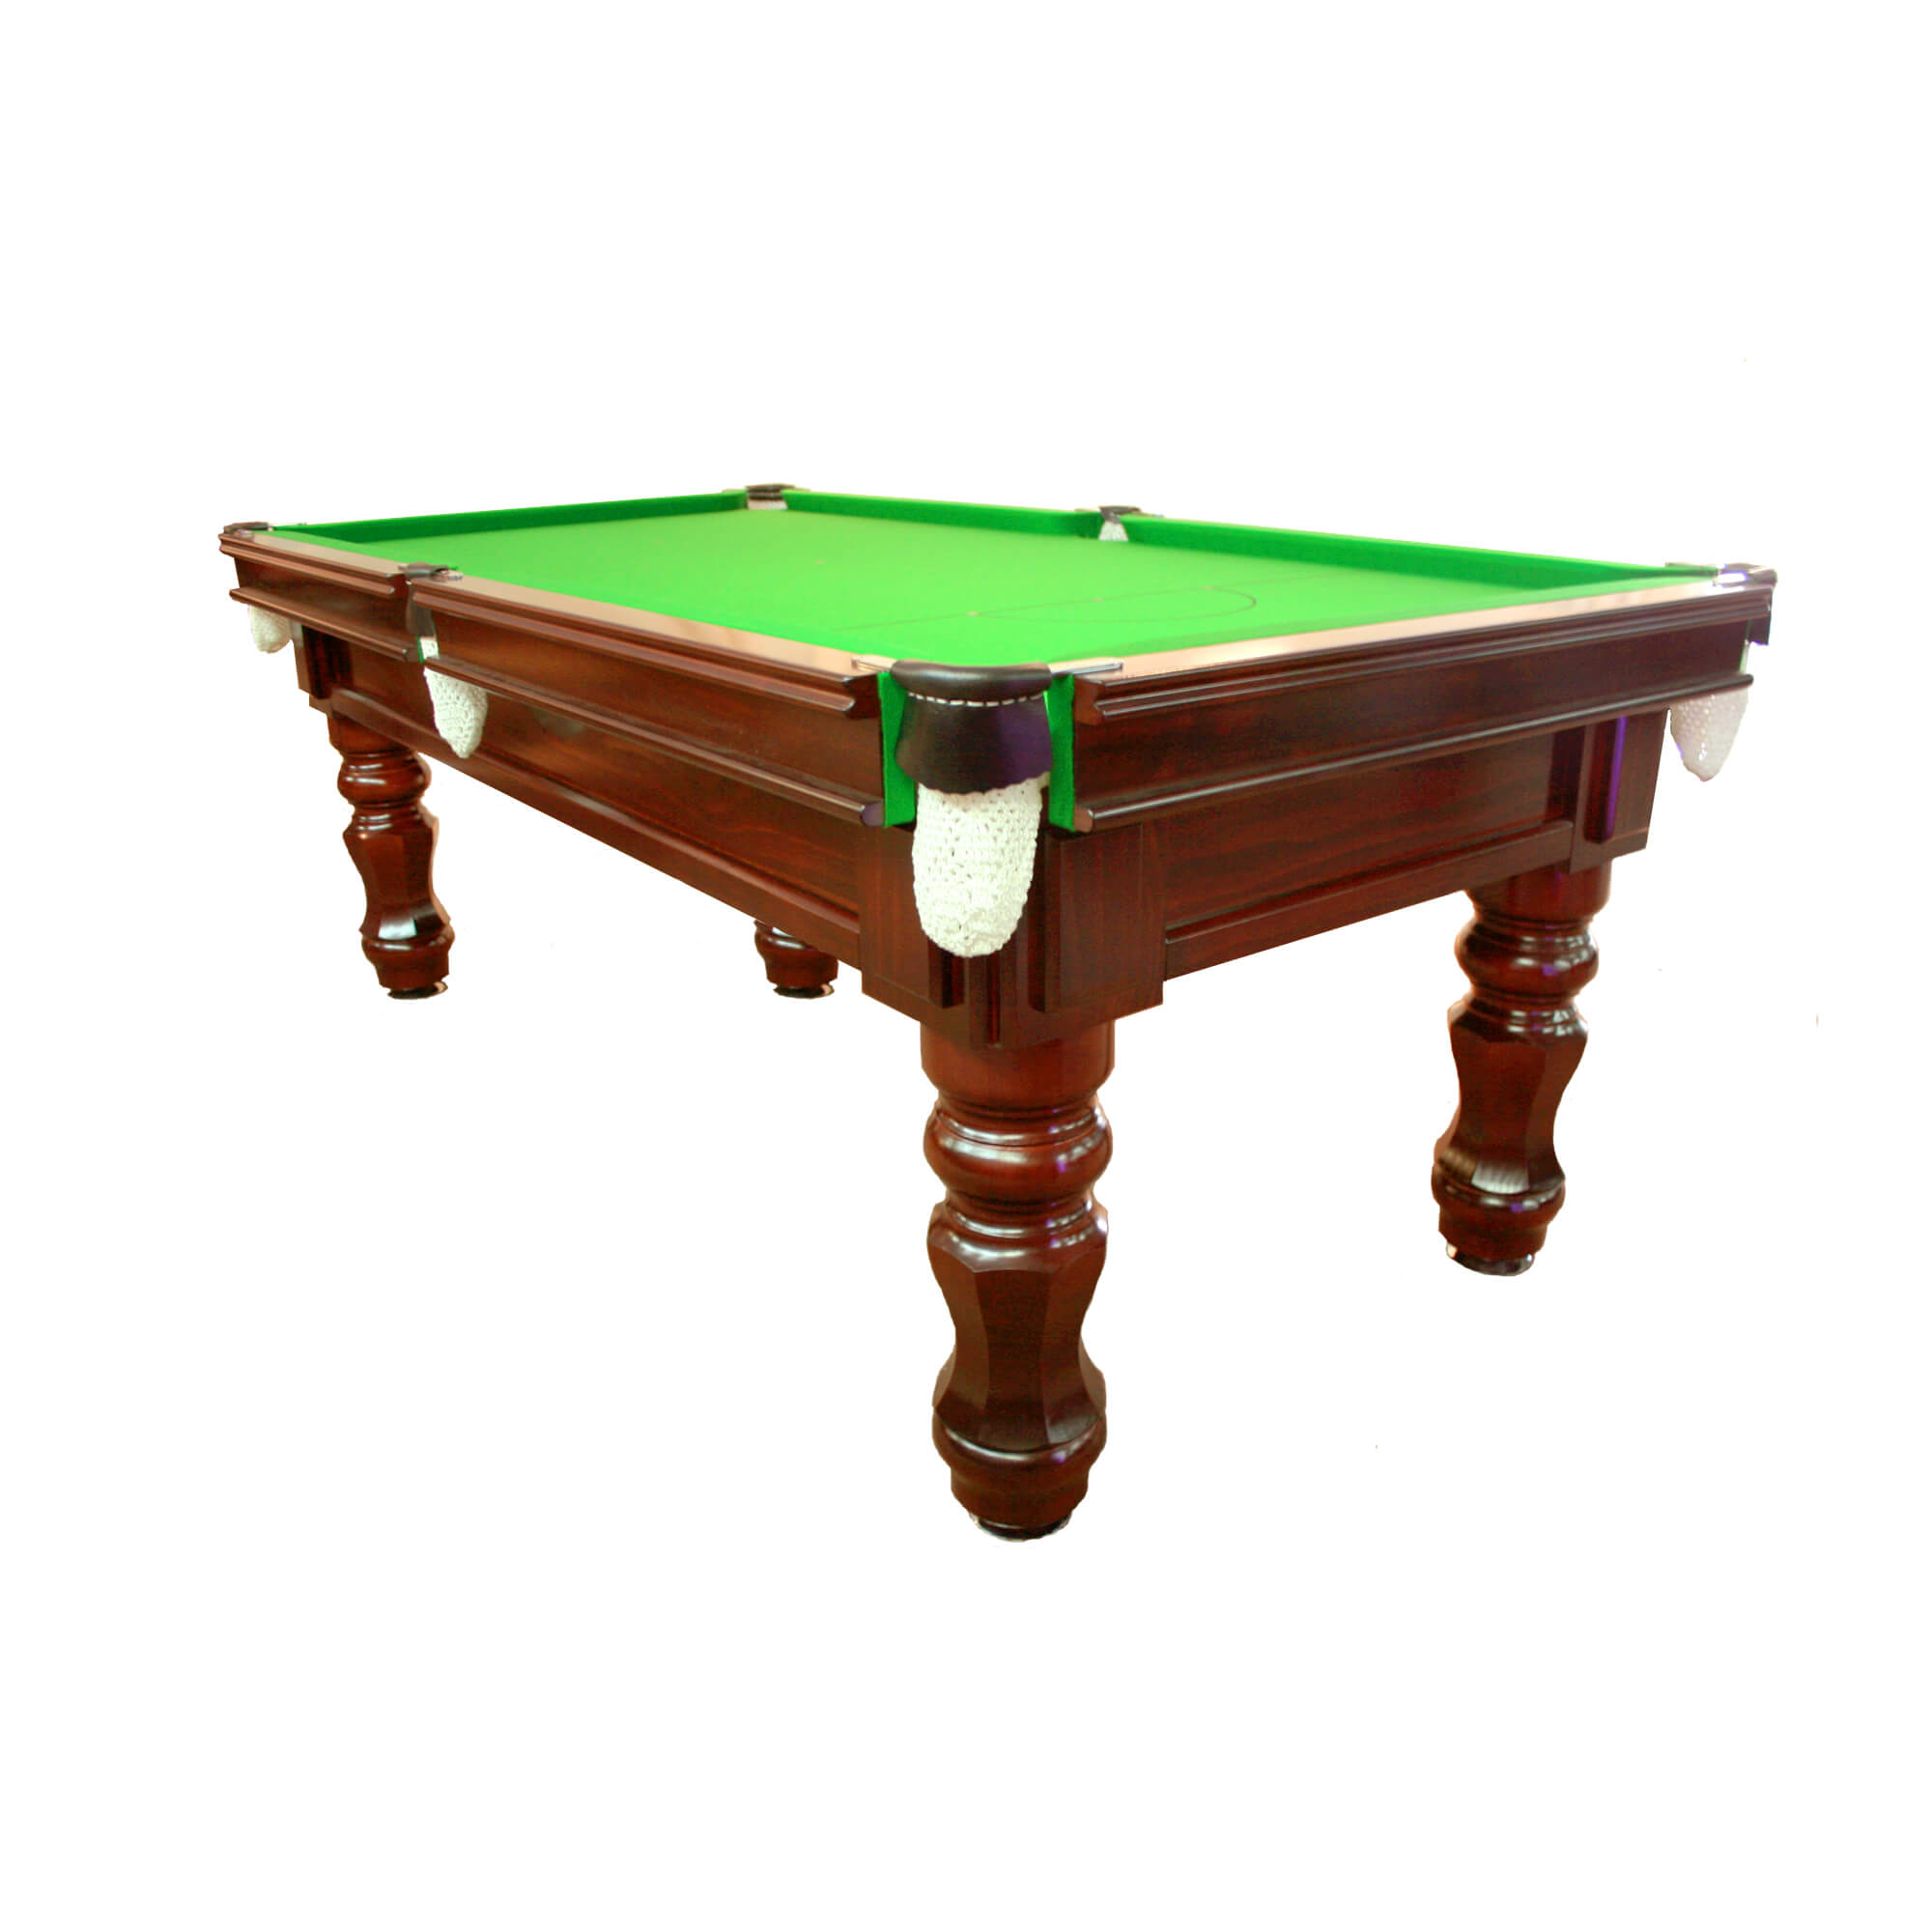 Combination pool table